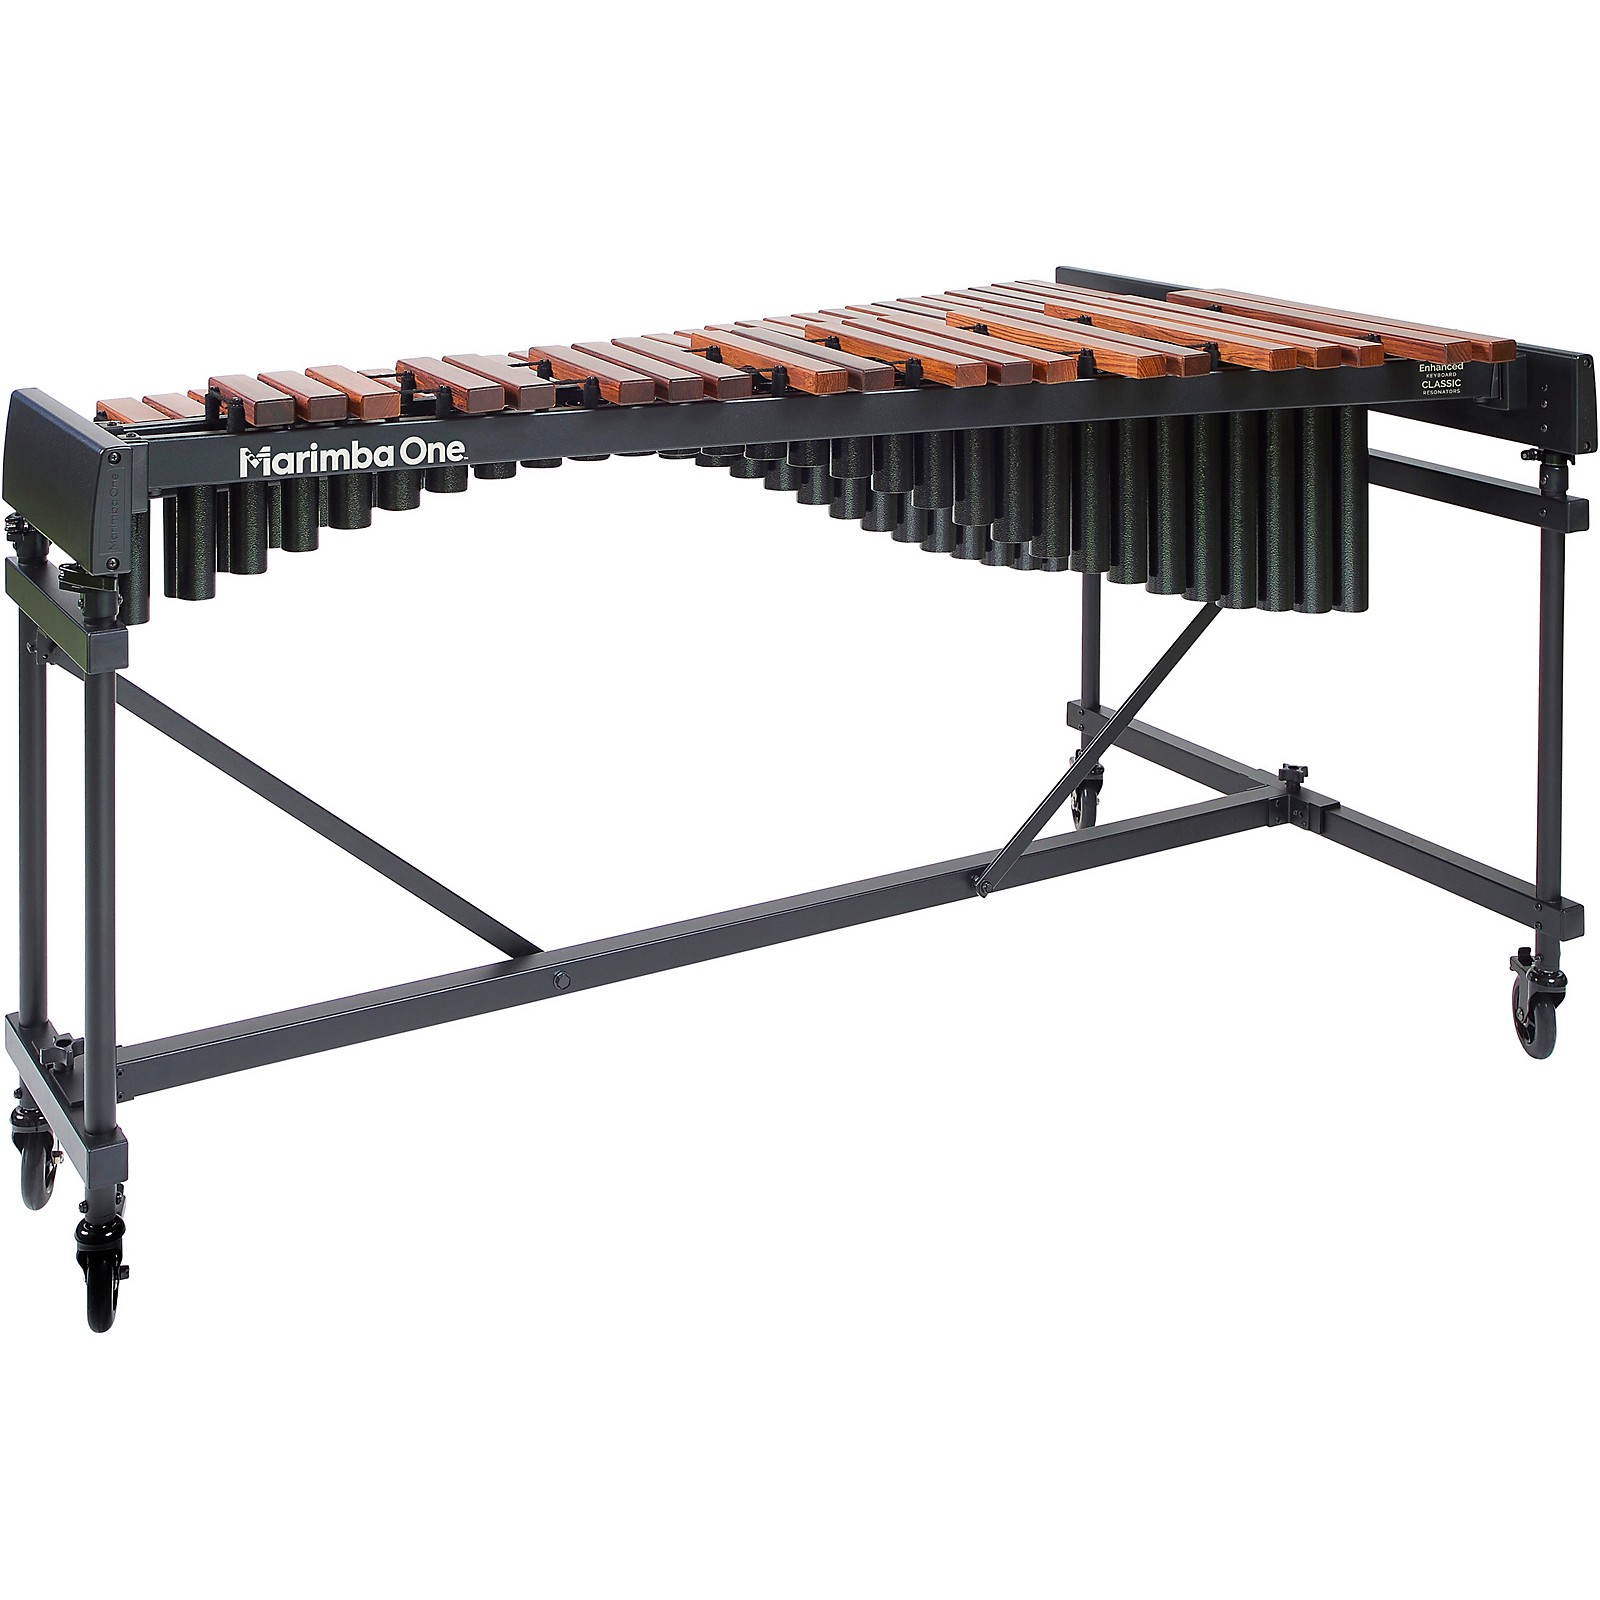 Marimba One M1 Concert Xylophone with Traditional Keyboard